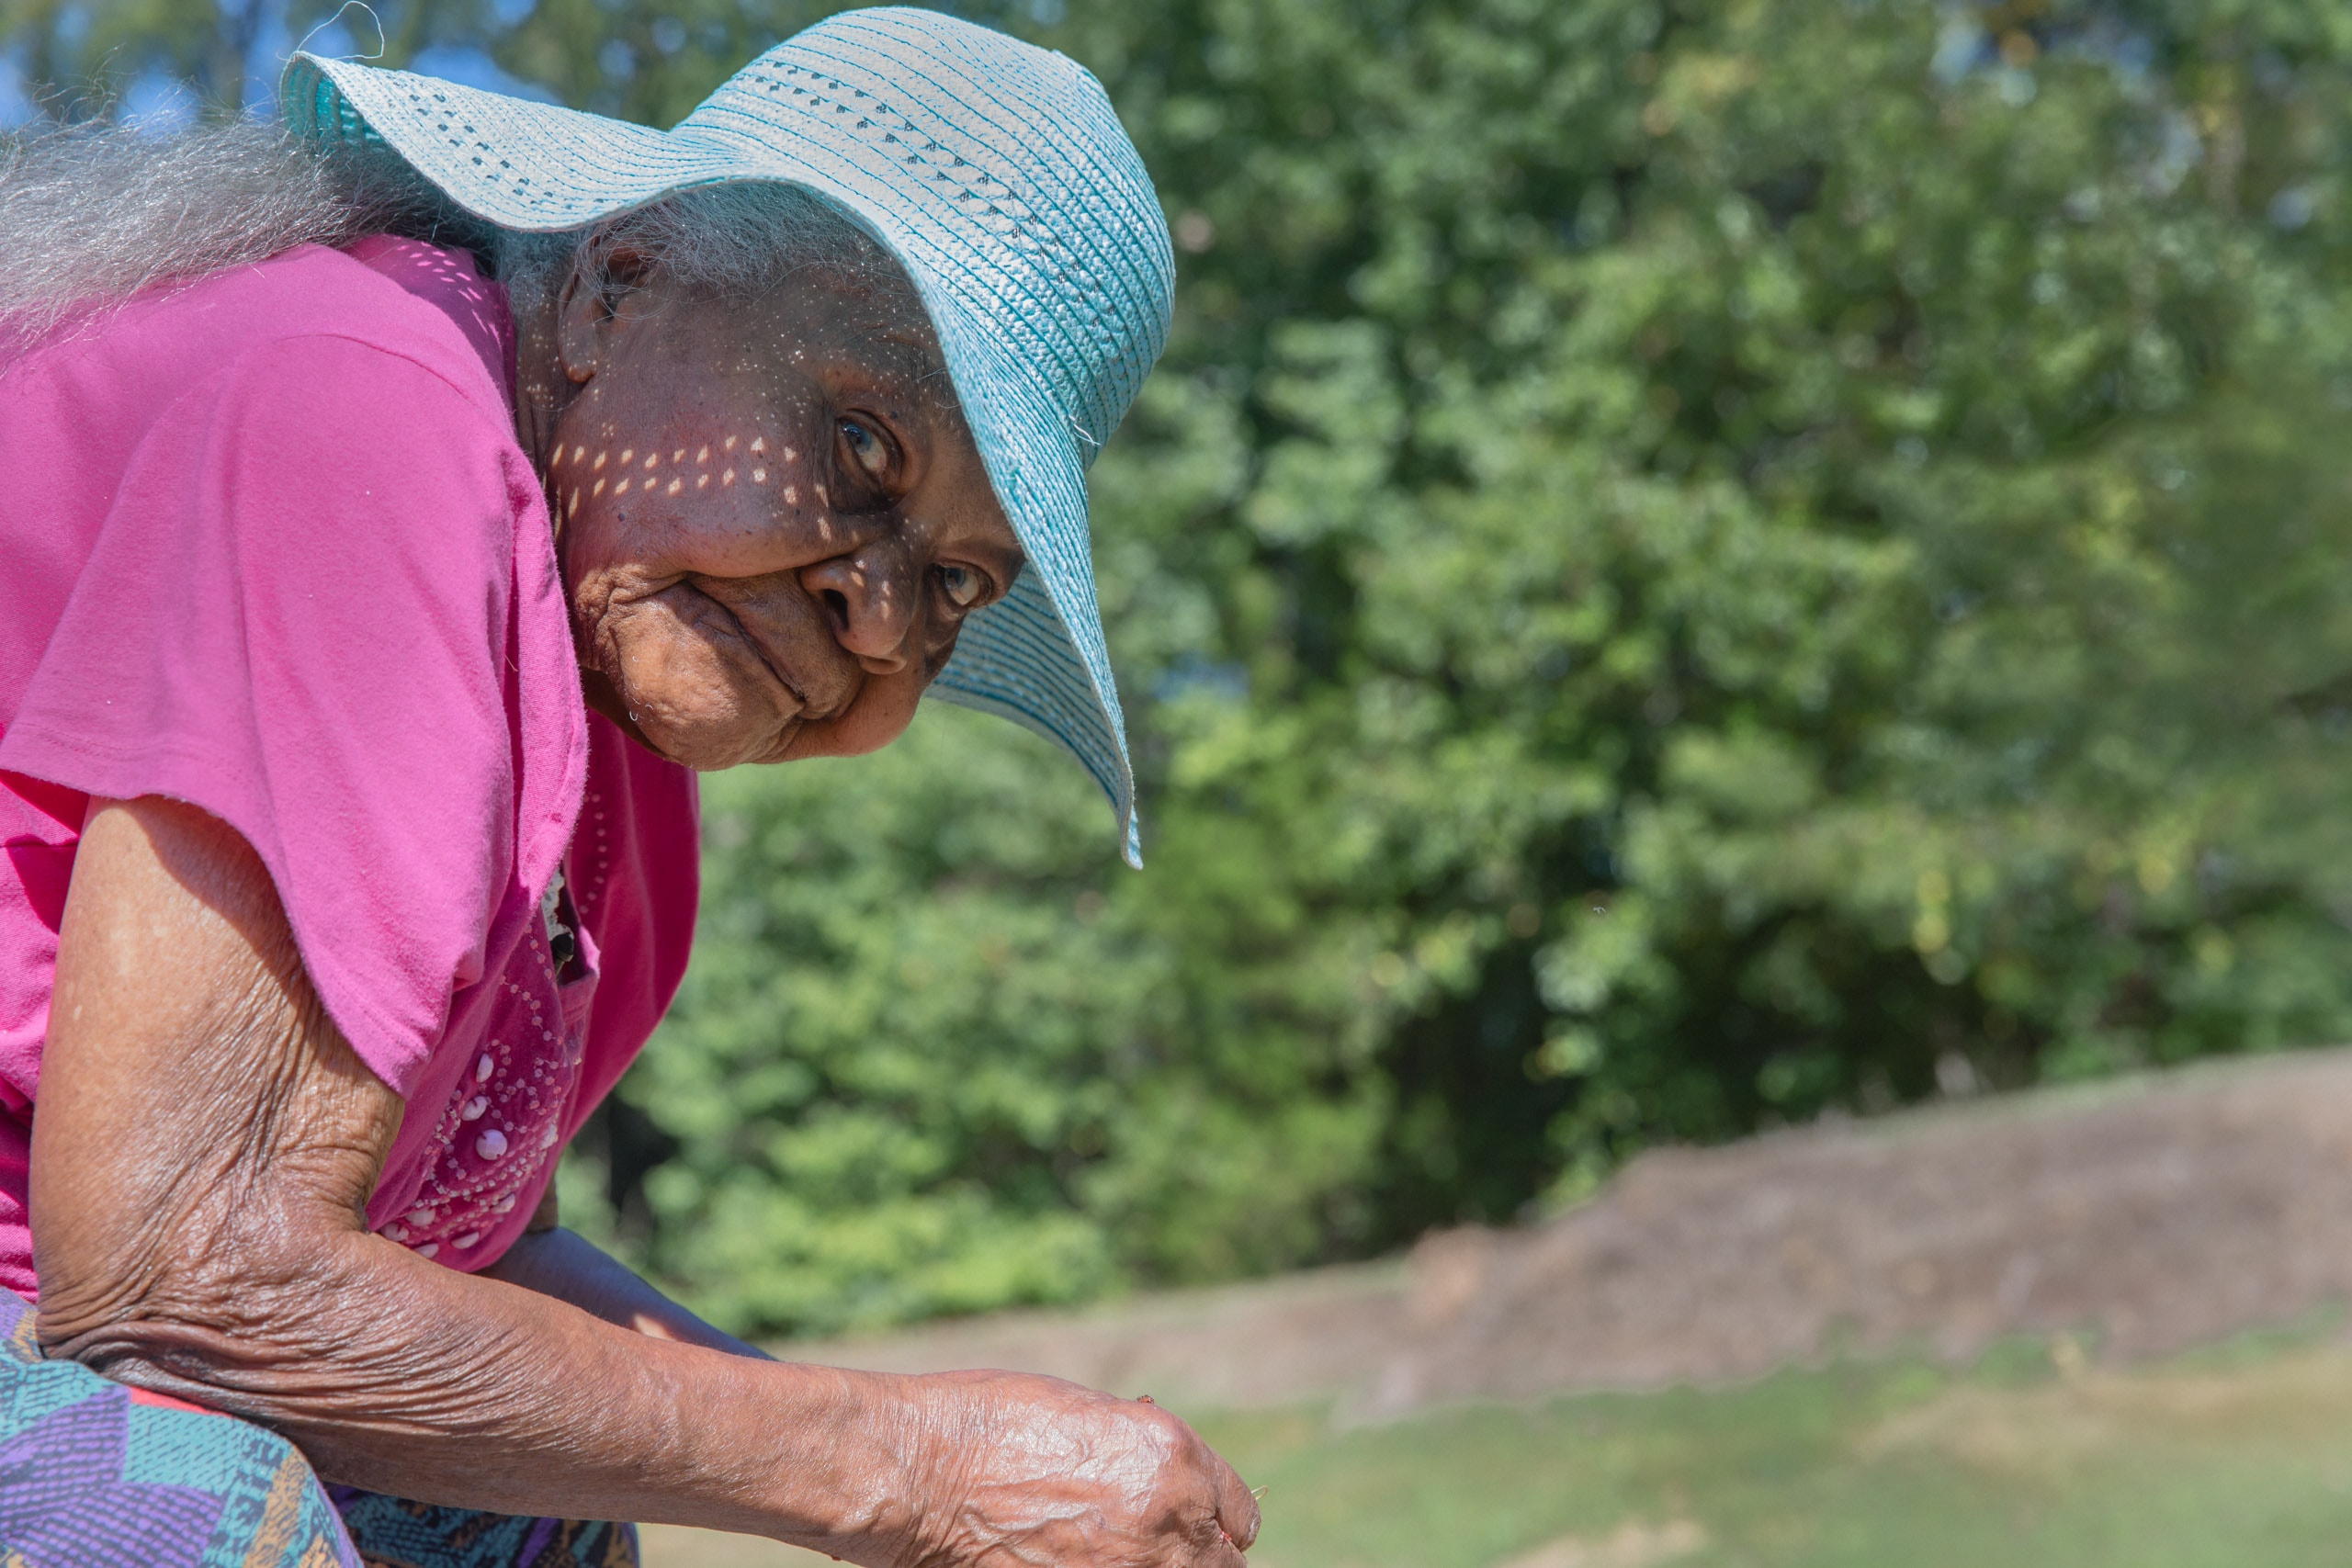 Medium close up of a 100 year old woman outside wearing a light blue sun hat and pink shirt. She is sitting perpendicular to the camer and has her head tirned to the camera lens. She has acurious and relaxed look on her face. Her eyes are light blue like her hat. This photograph is part of the To Live 10,000 Years series by Danny Goldfield.